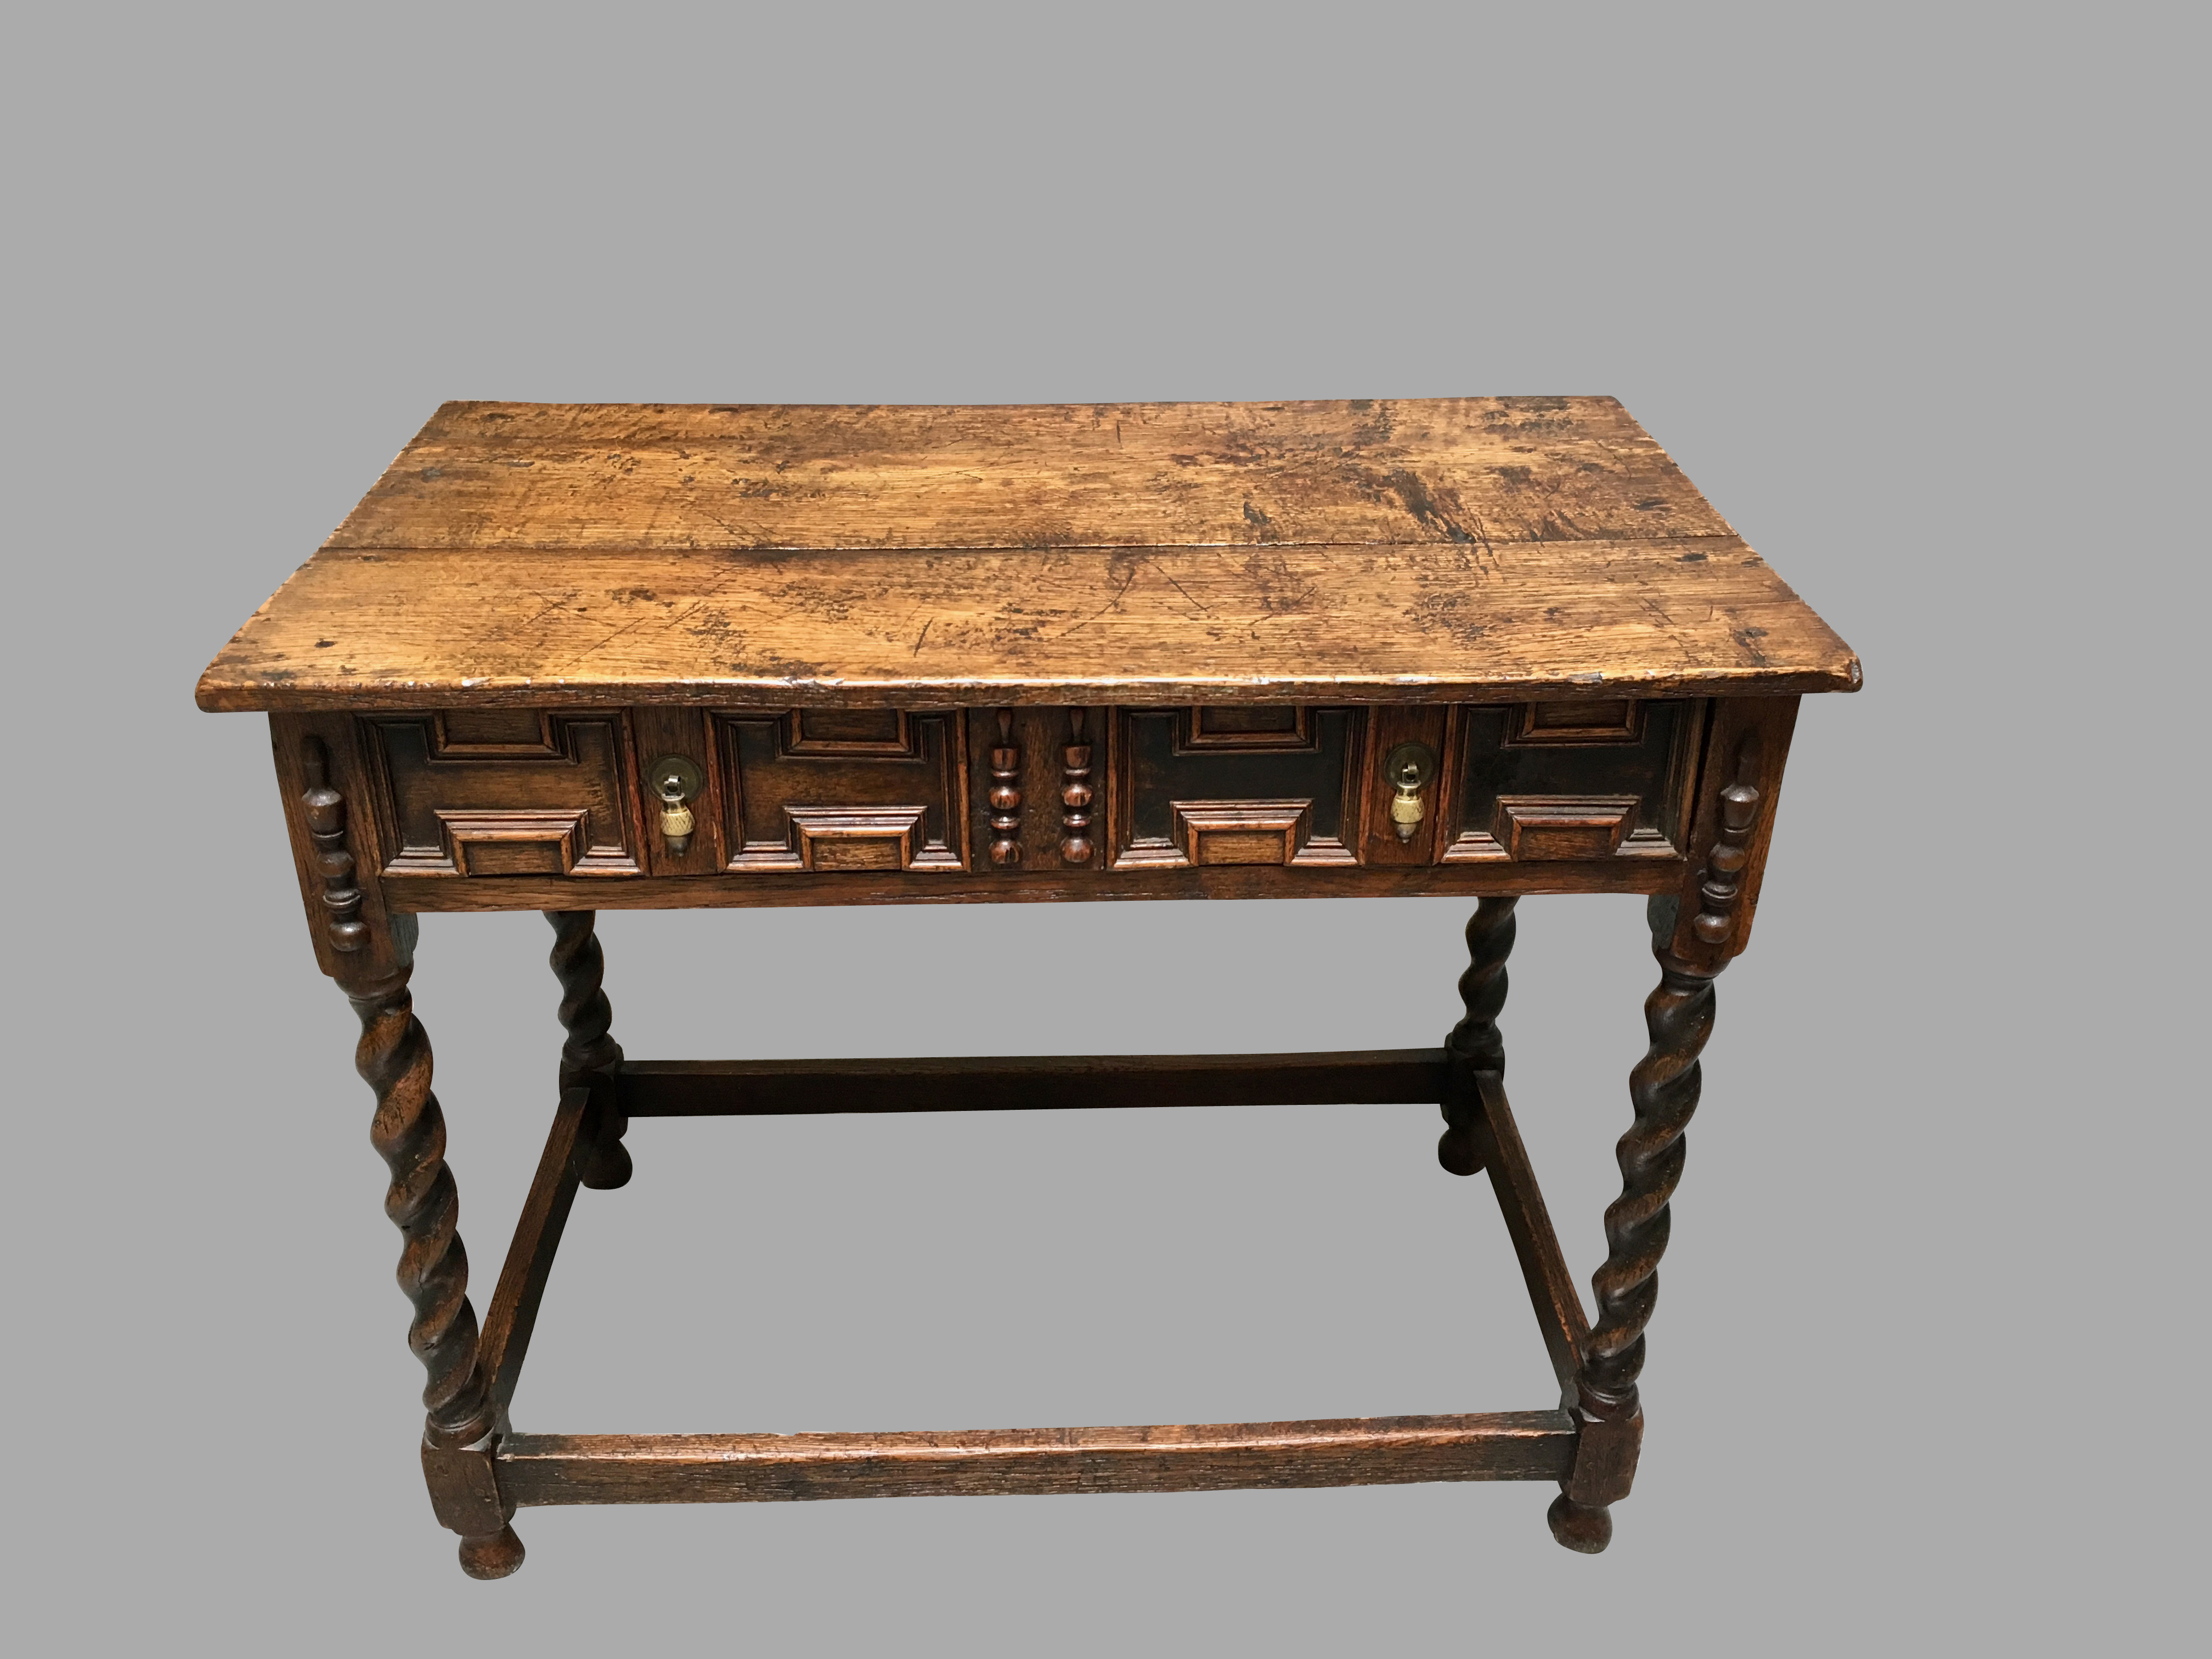 James II Style Oak Side Table with Drawer | DANIEL STEIN Antiques San Francisco CA